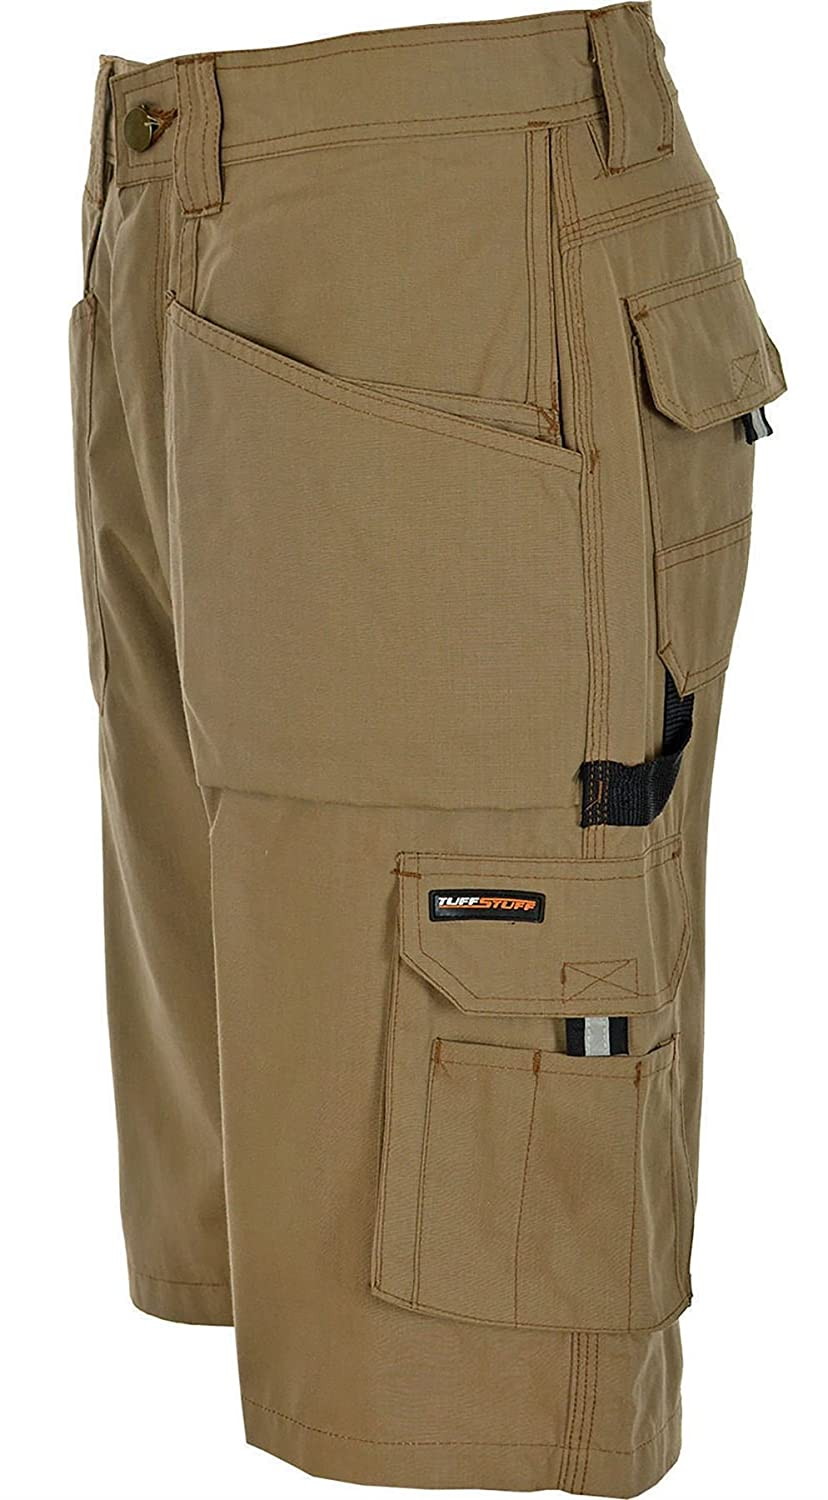 Tuff Stuff Mens Endurance Work Shorts with Holster Pockets